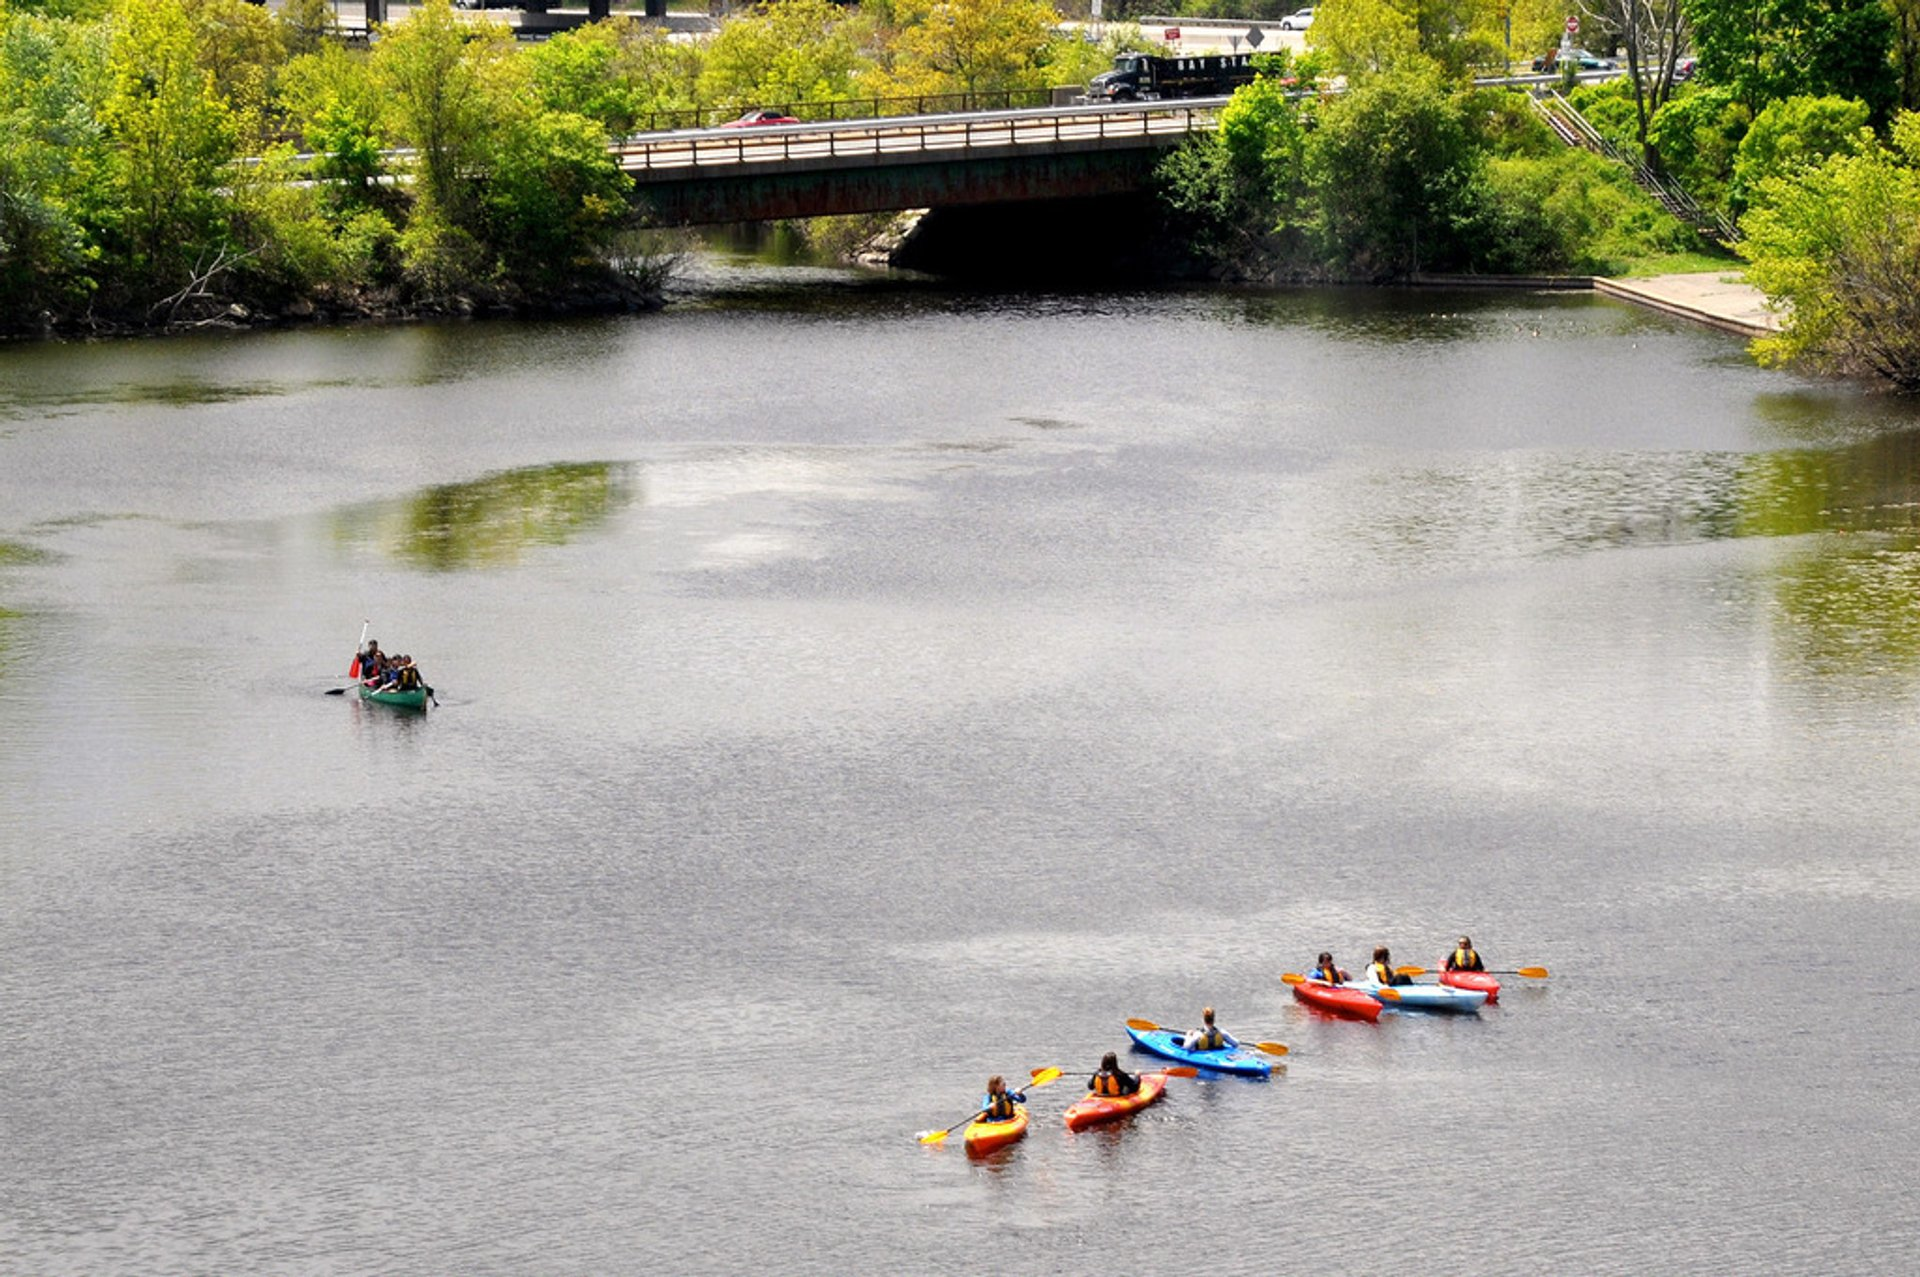 Charles River Kayaking in Boston - Best Season